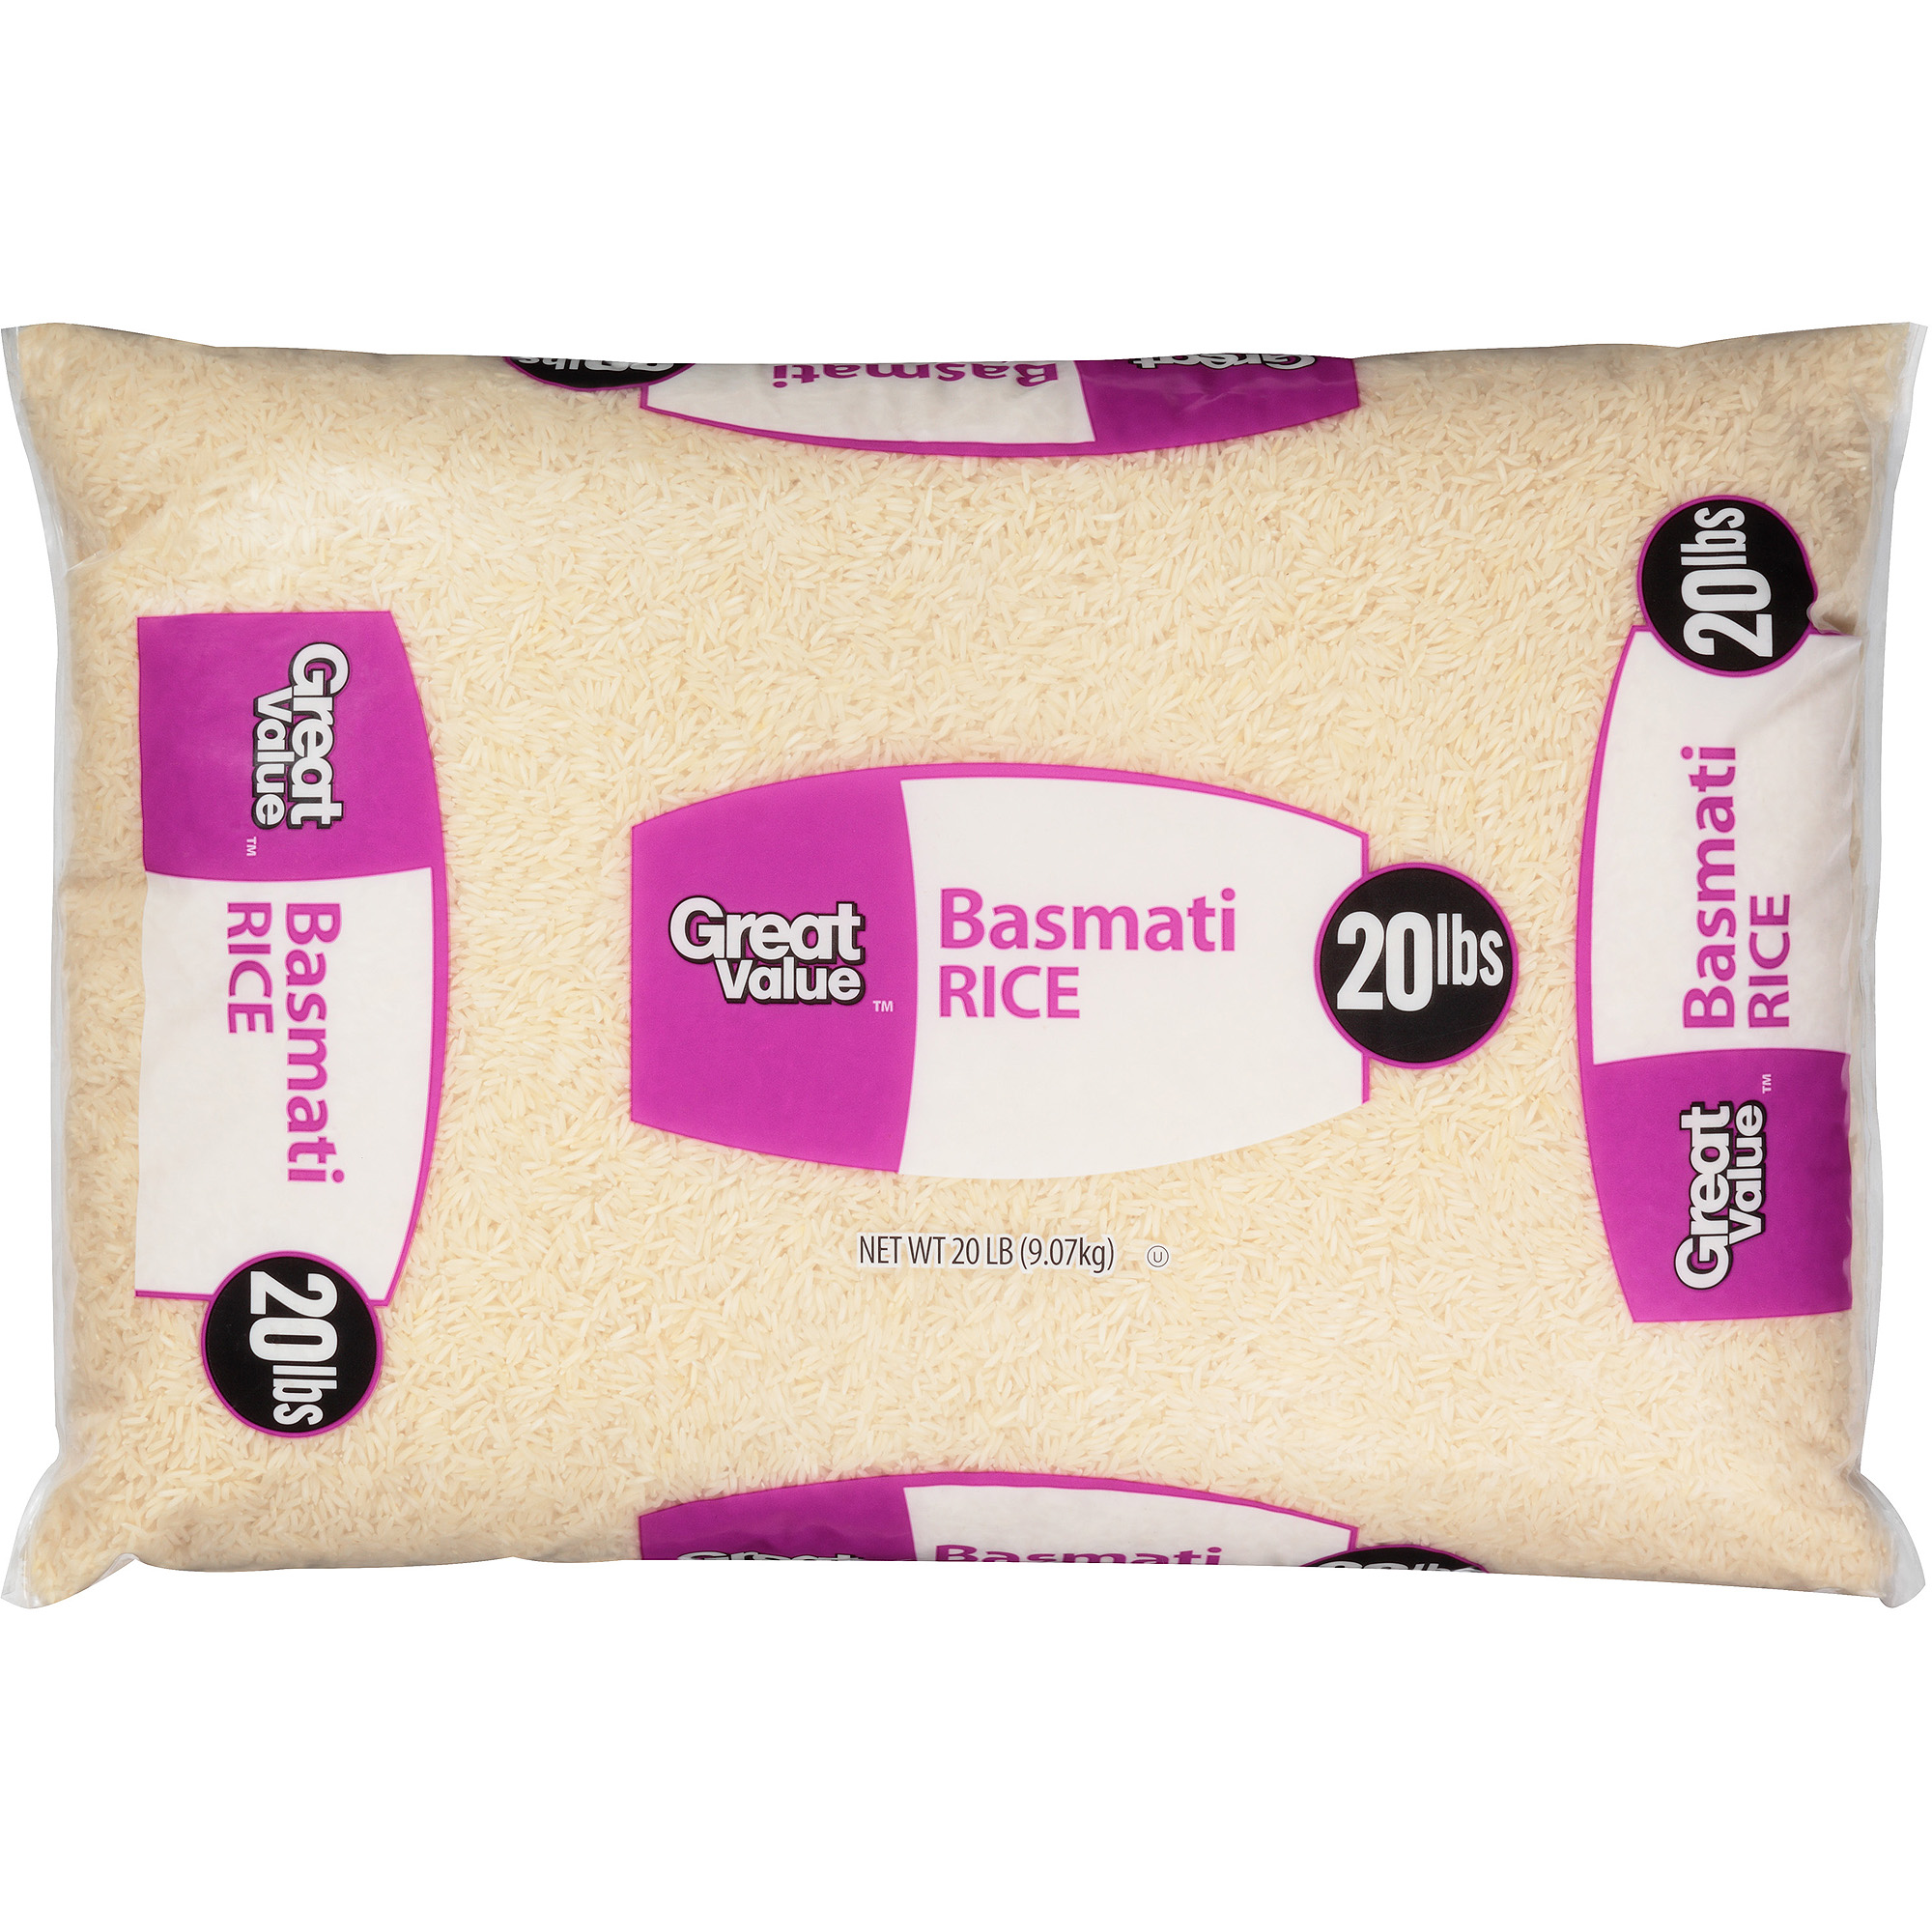 Great Value Basmati Rice, 20 lbs by Wal-Mart Stores, Inc.